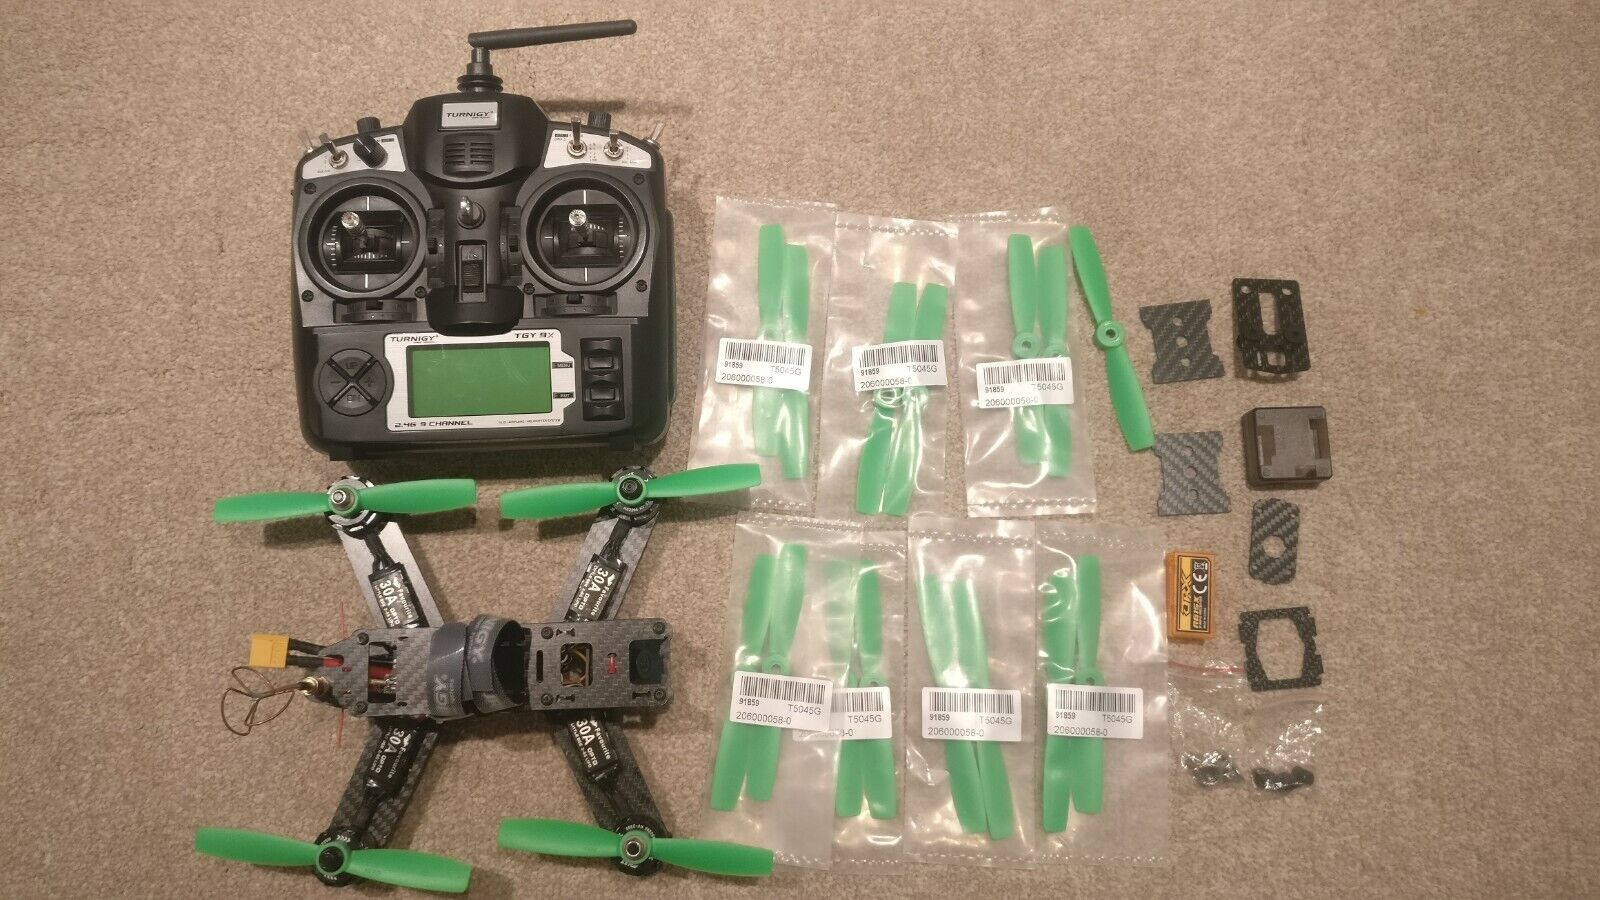 Racing FPV quadcopter MiniQuad Drone 250 class with TX, needs batteries, ARTF